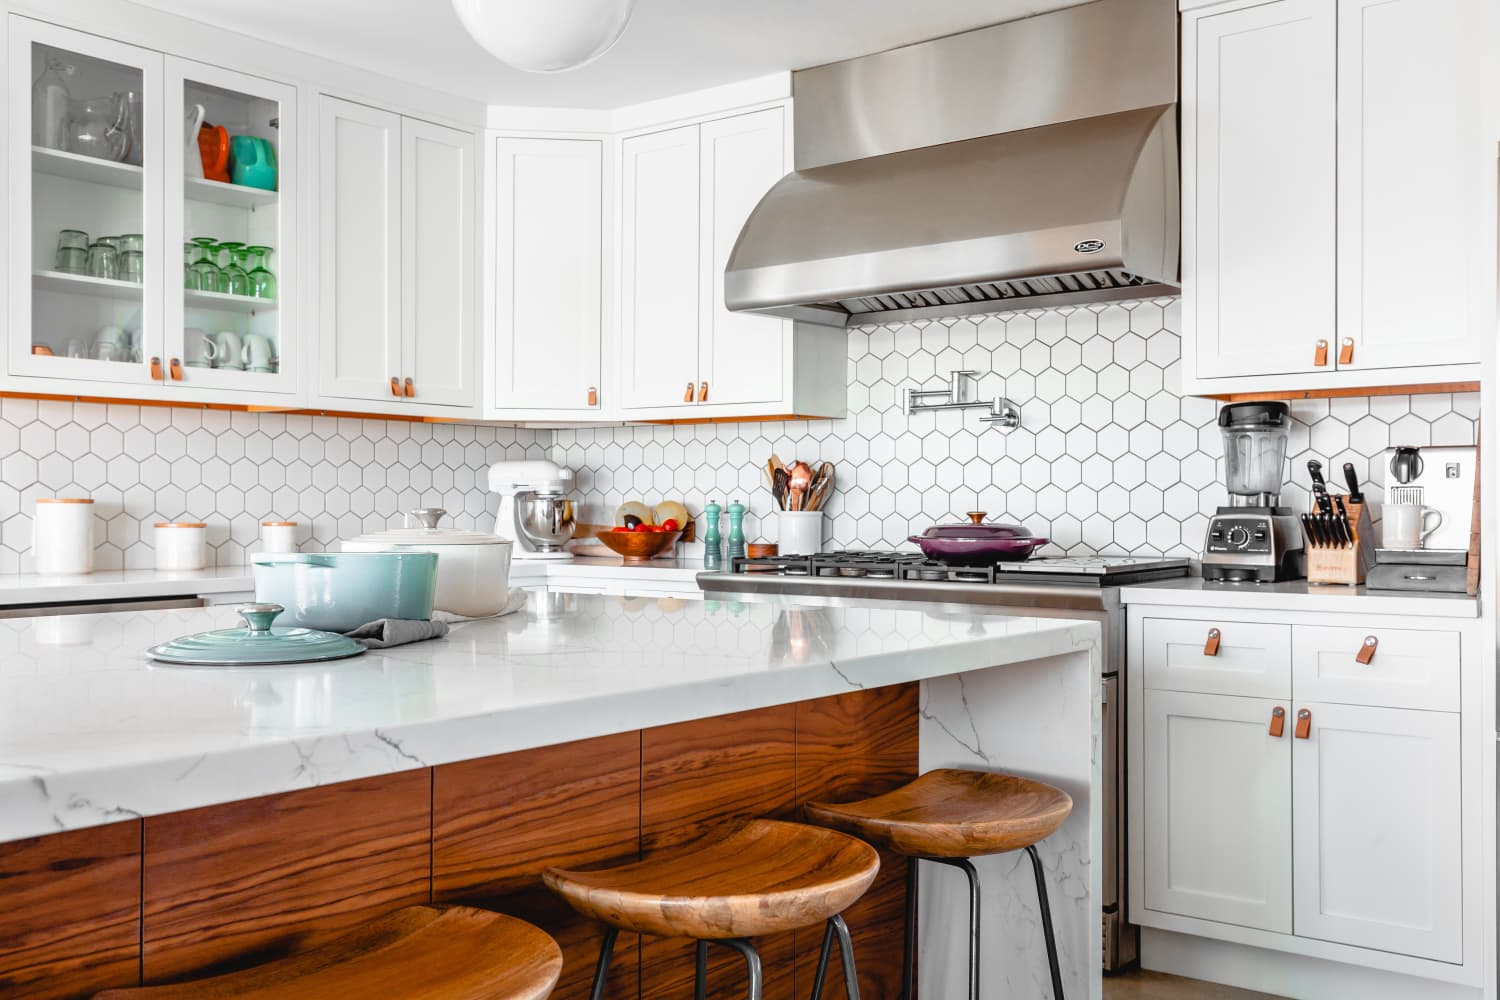 5 Things You Should Never Store In Your Lower Kitchen Cabinets